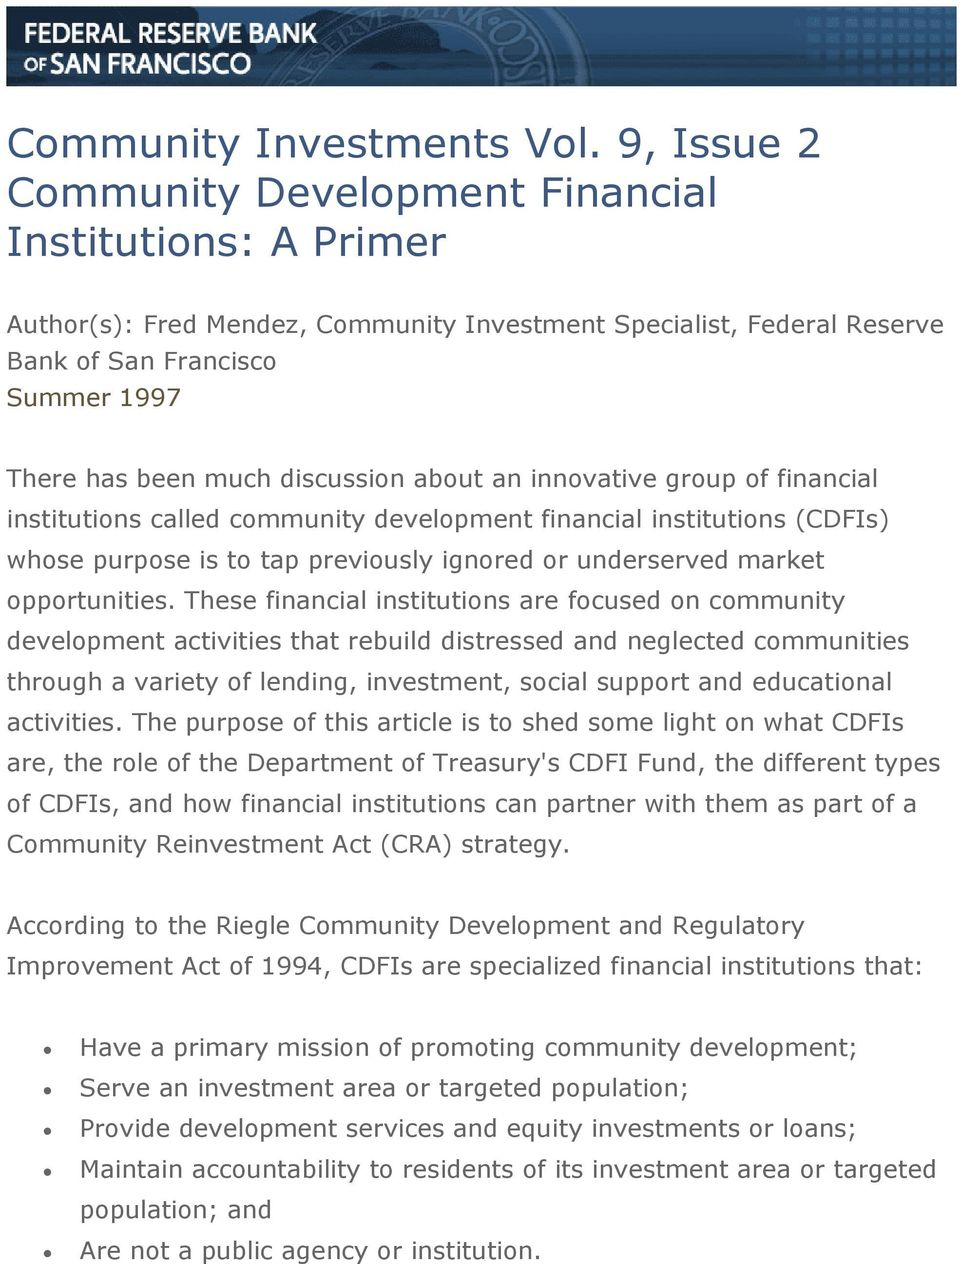 discussion about an innovative group of financial institutions called community development financial institutions (CDFIs) whose purpose is to tap previously ignored or underserved market